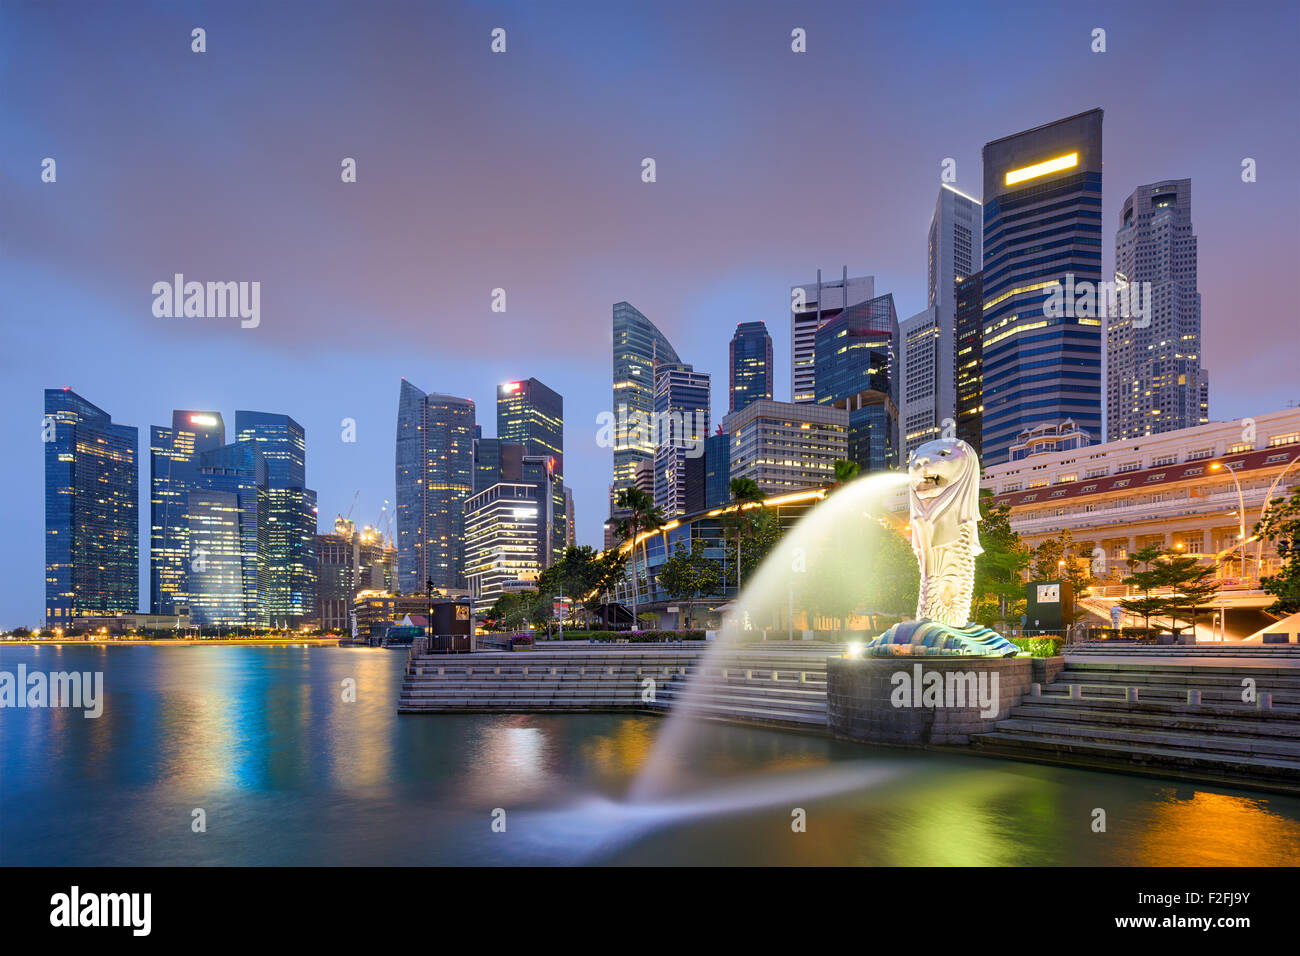 Singapore skyline at the fountain. - Stock Image